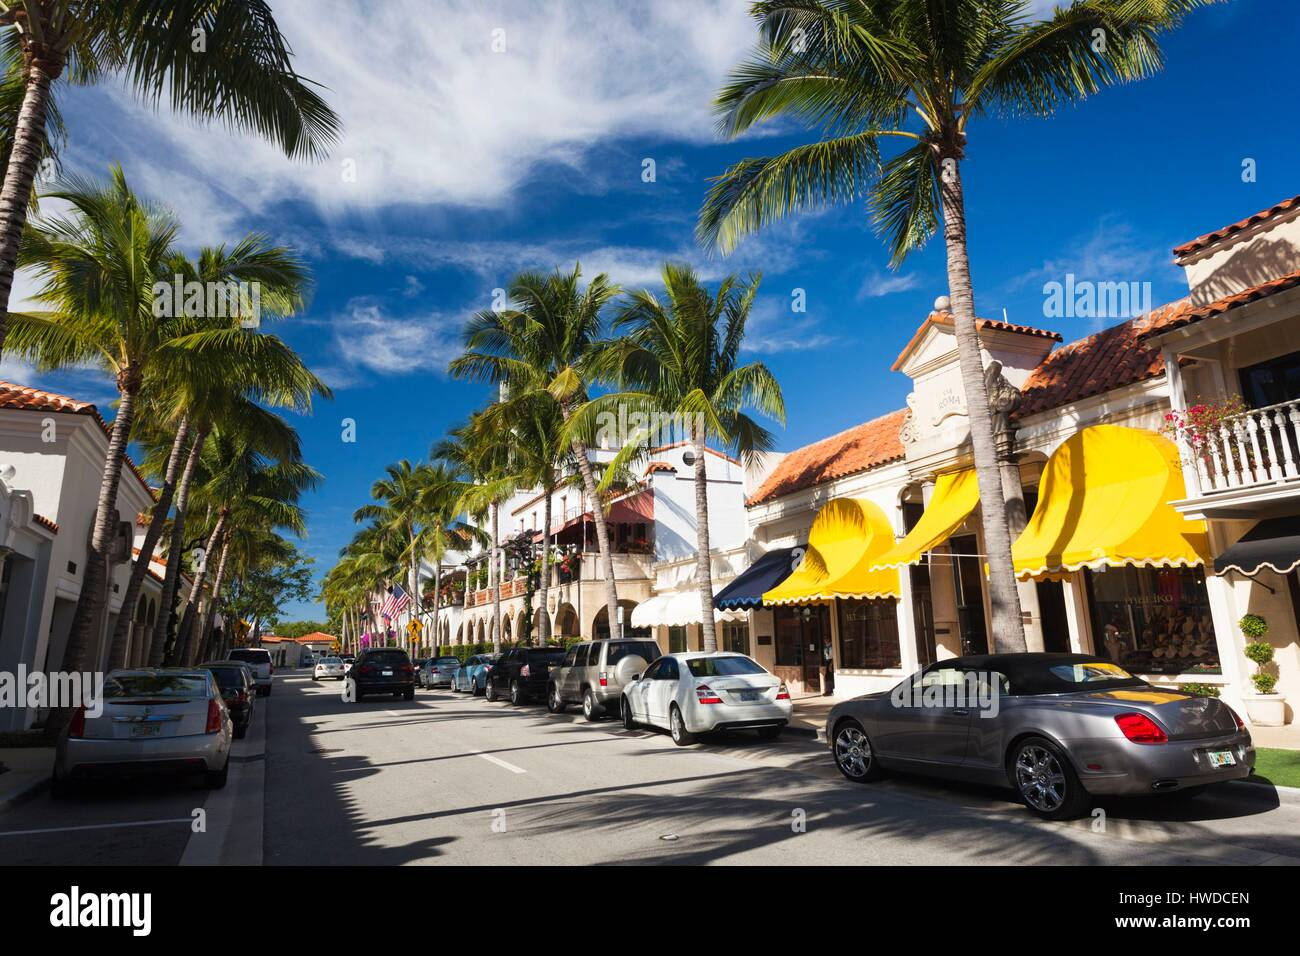 United States, Florida, Palm Beach, Worth Avenue Stock Photo